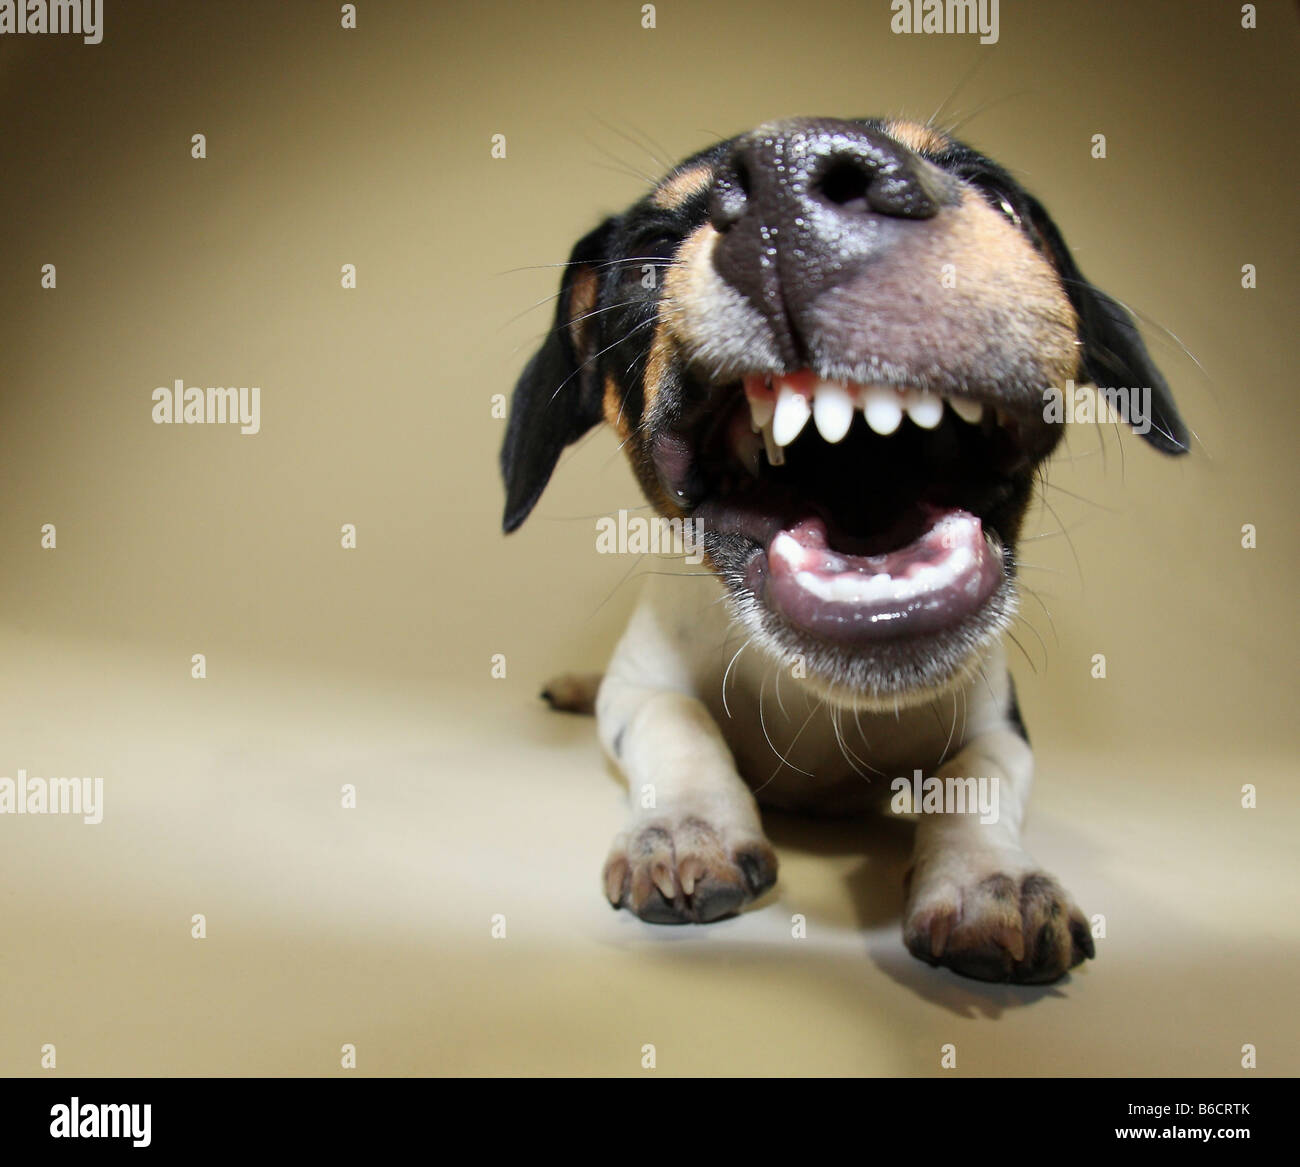 Close-up of Jack Russel Terrier dog snarling - Stock Image